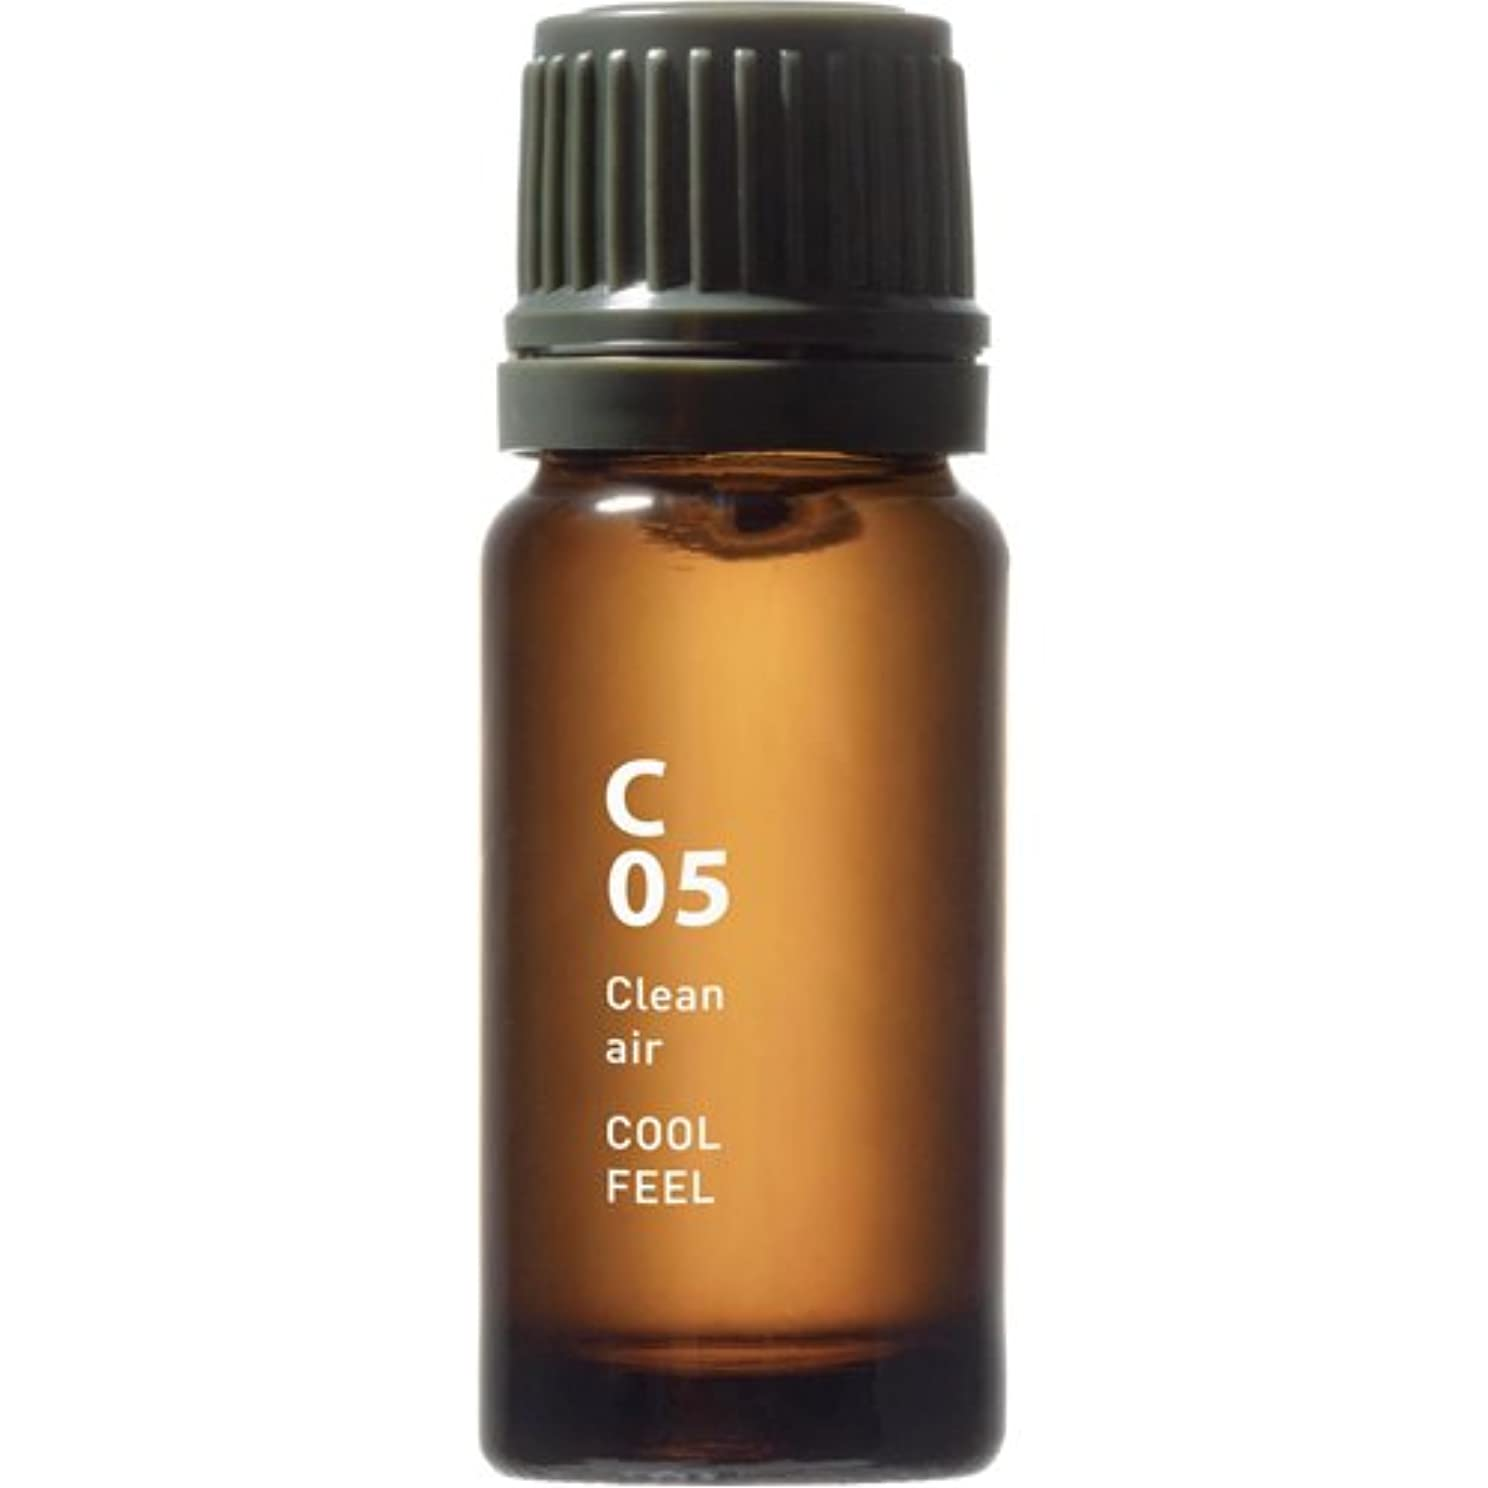 C05 COOL FEEL Clean air 10ml